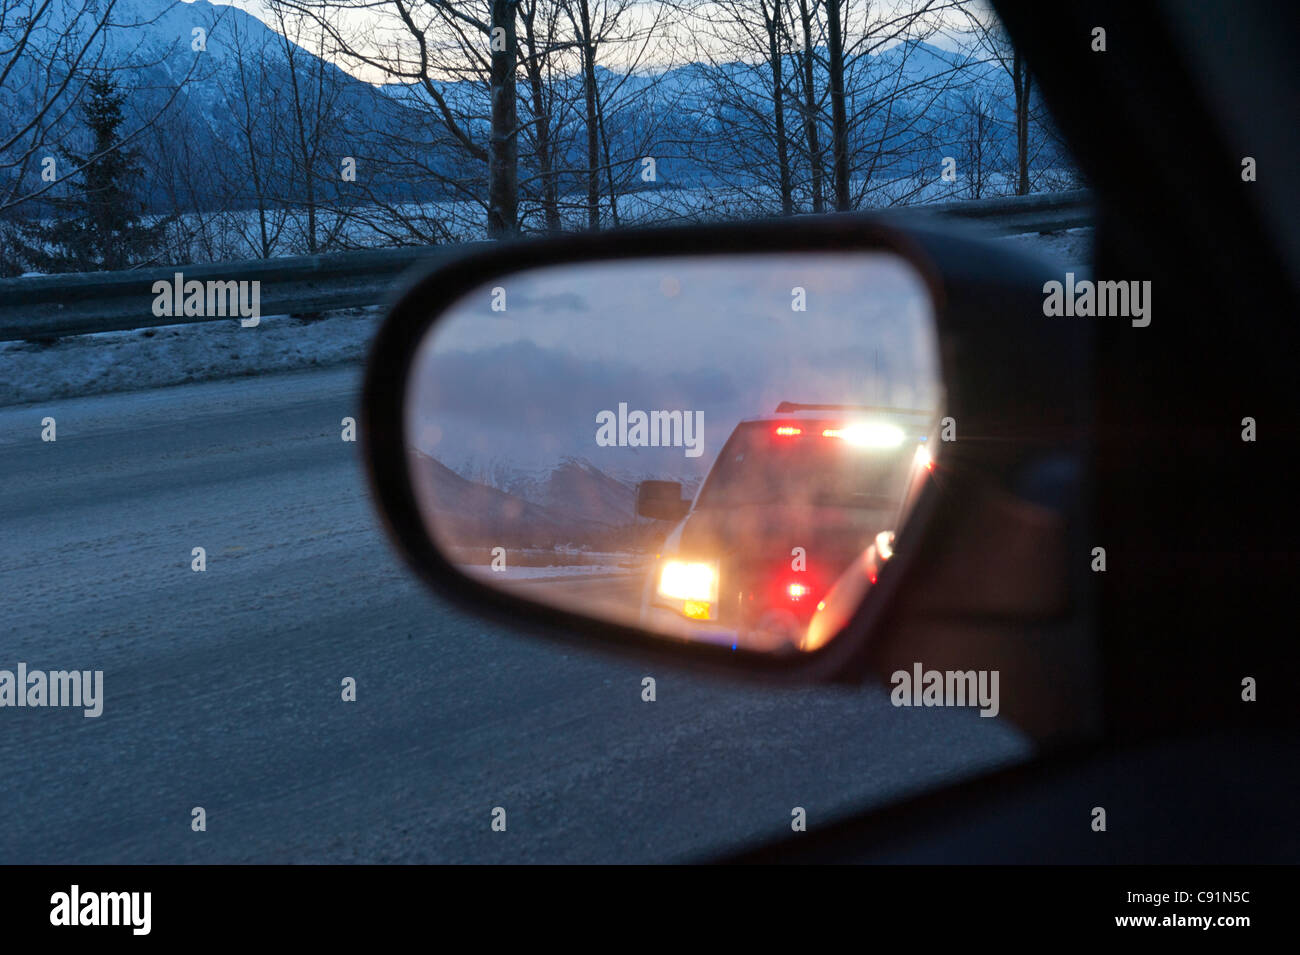 Beautiful The Lights Of An Police Vehicle Reflect In The Rear View Mirror Of A Car On  The Seward Highway, Turnagain Arm, Alaska Nice Look